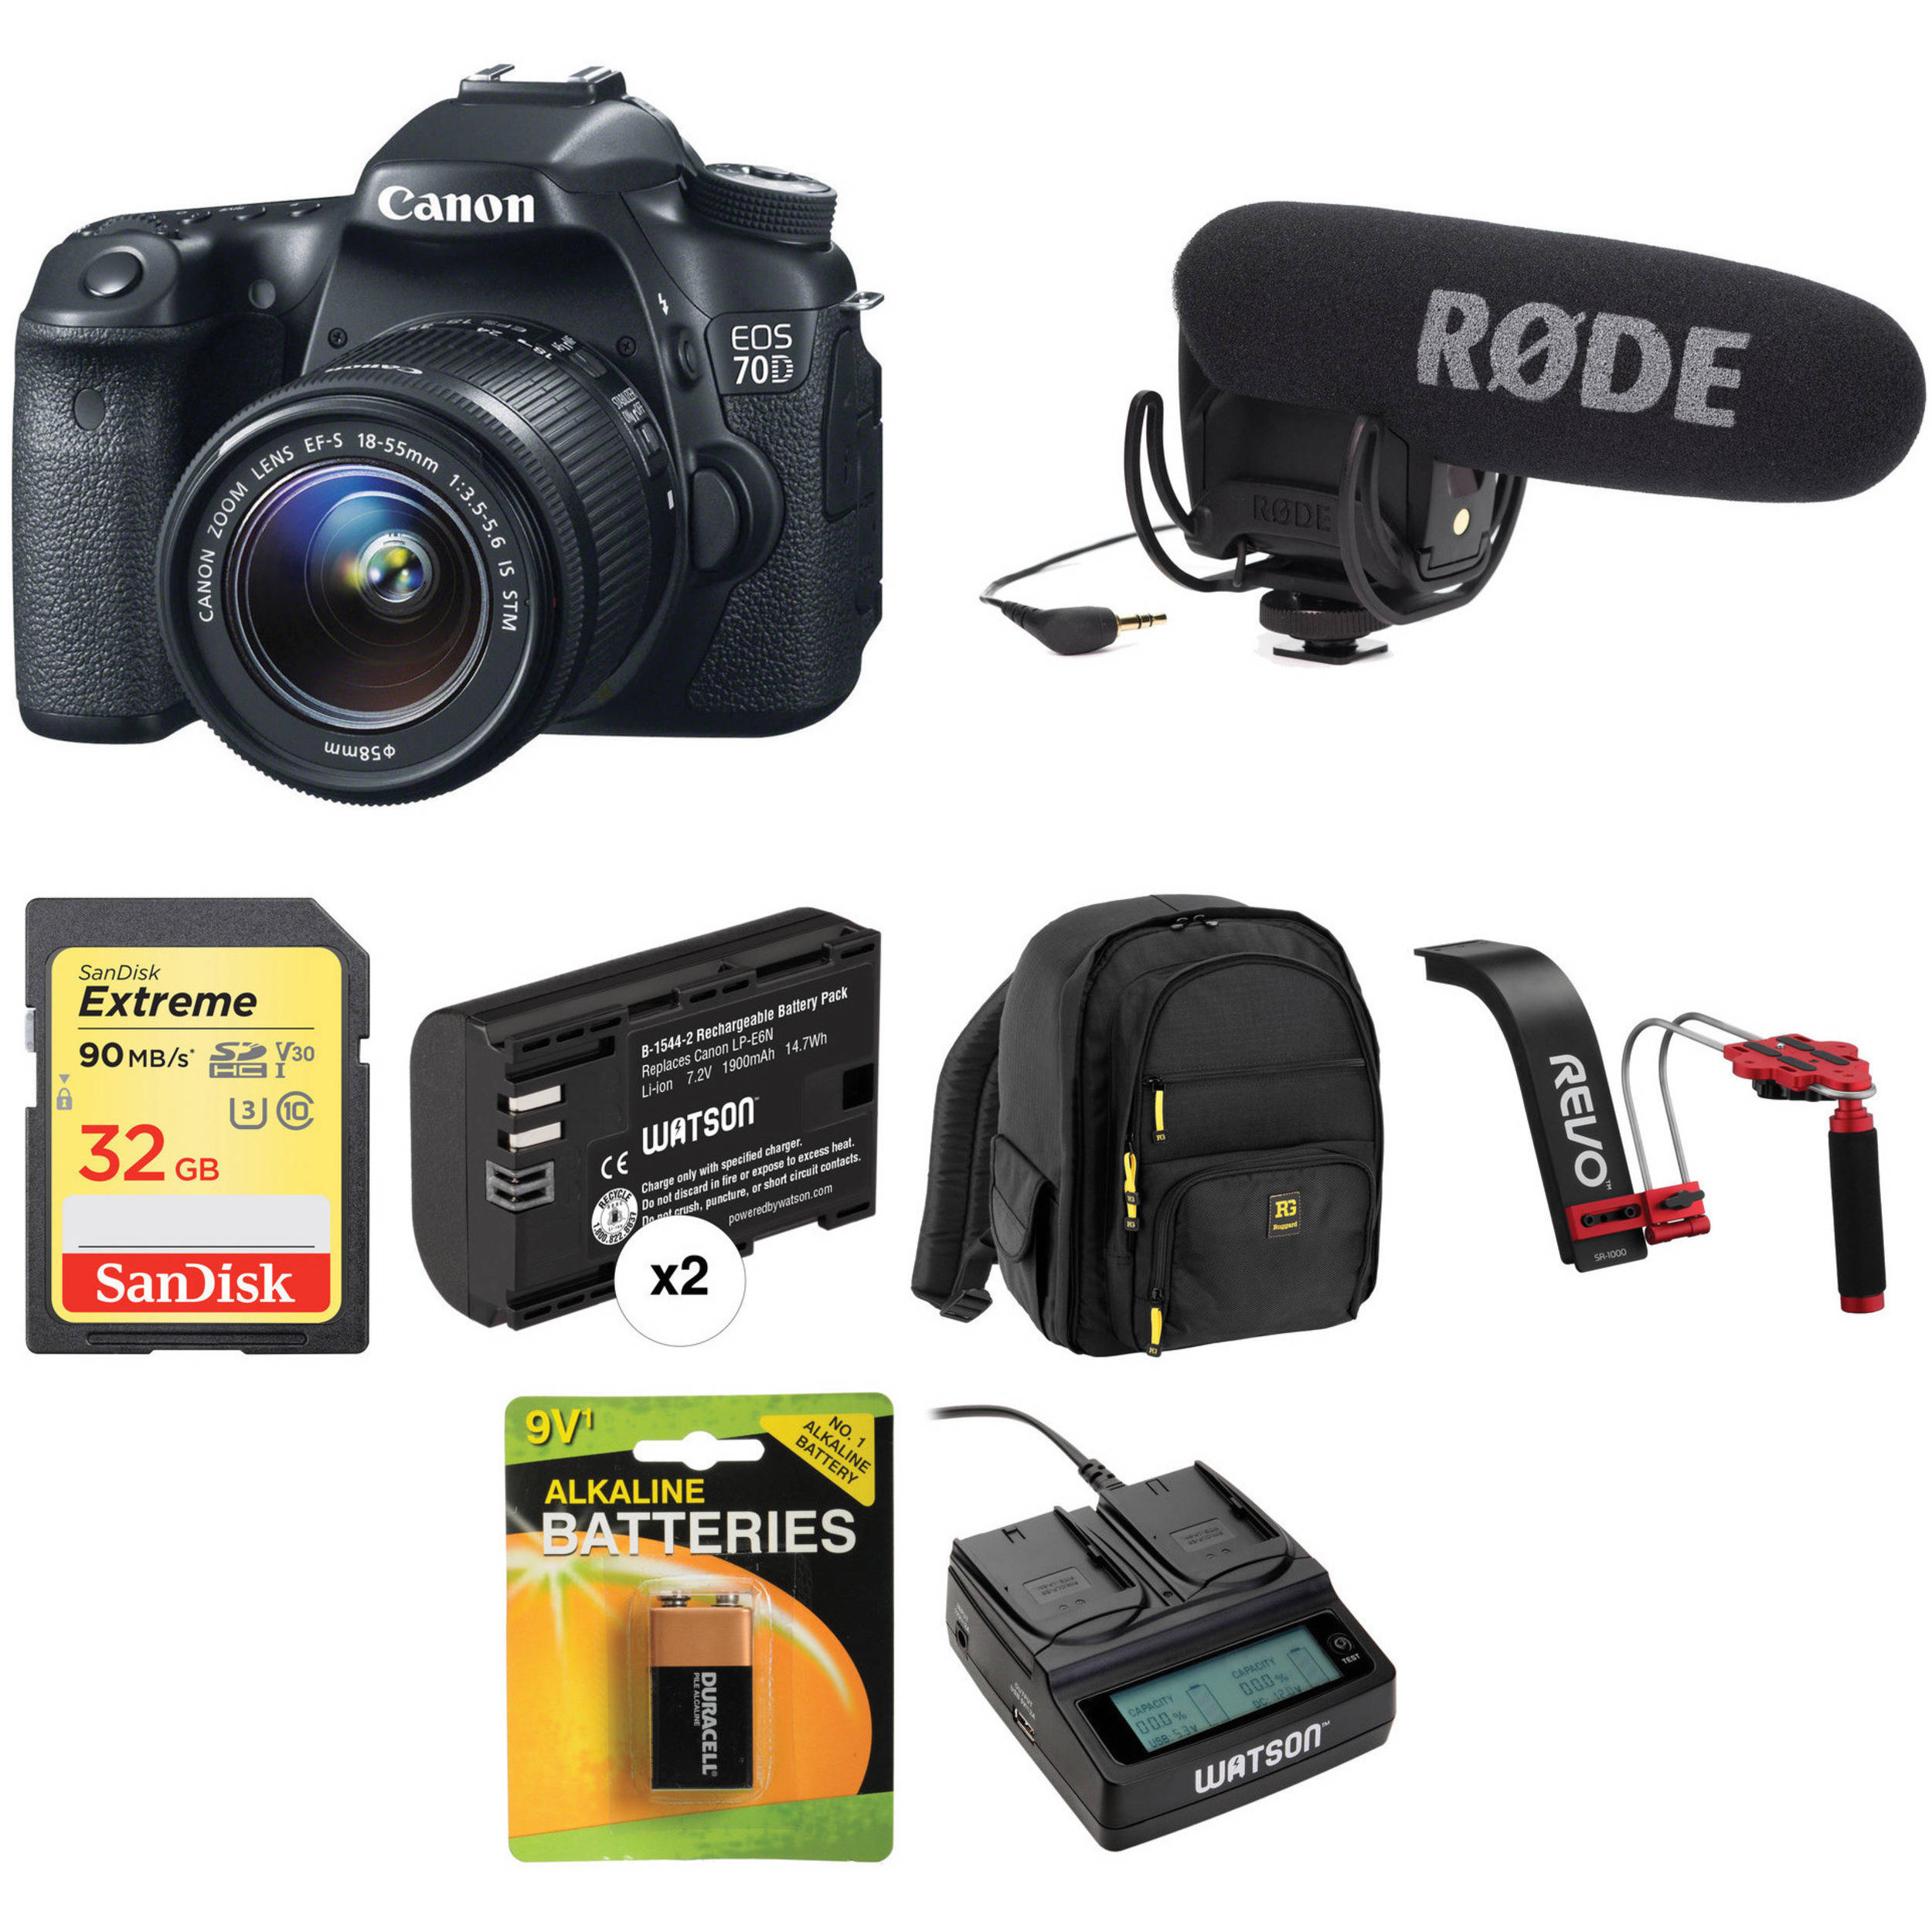 Canon EOS 70D DSLR Camera with 1855mm Lens Video Kit BH Photo